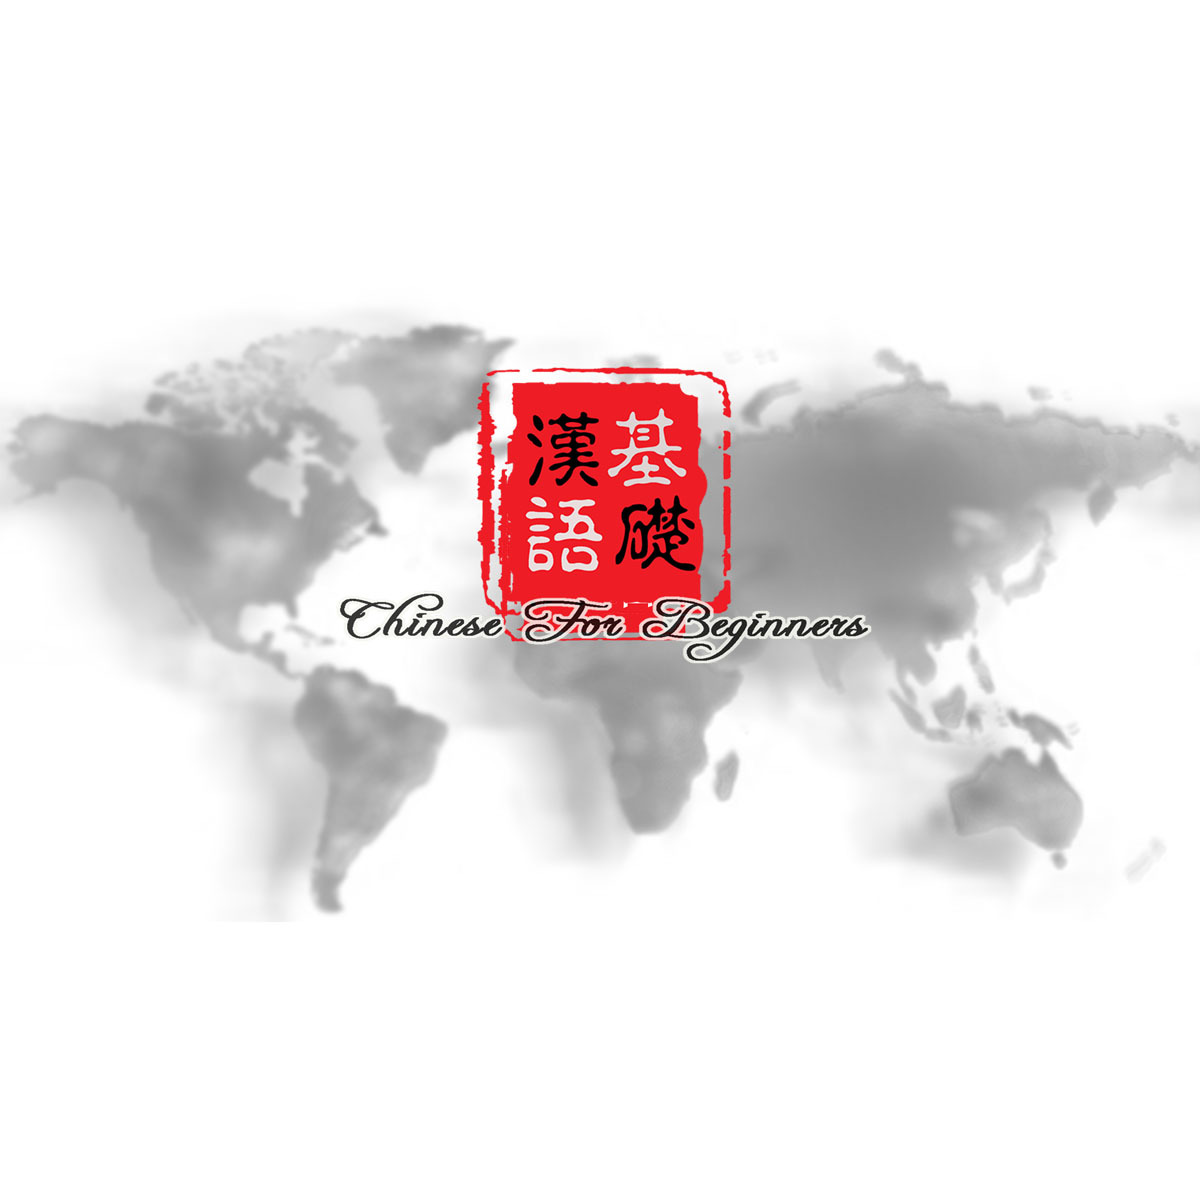 Chinese for Beginners course image